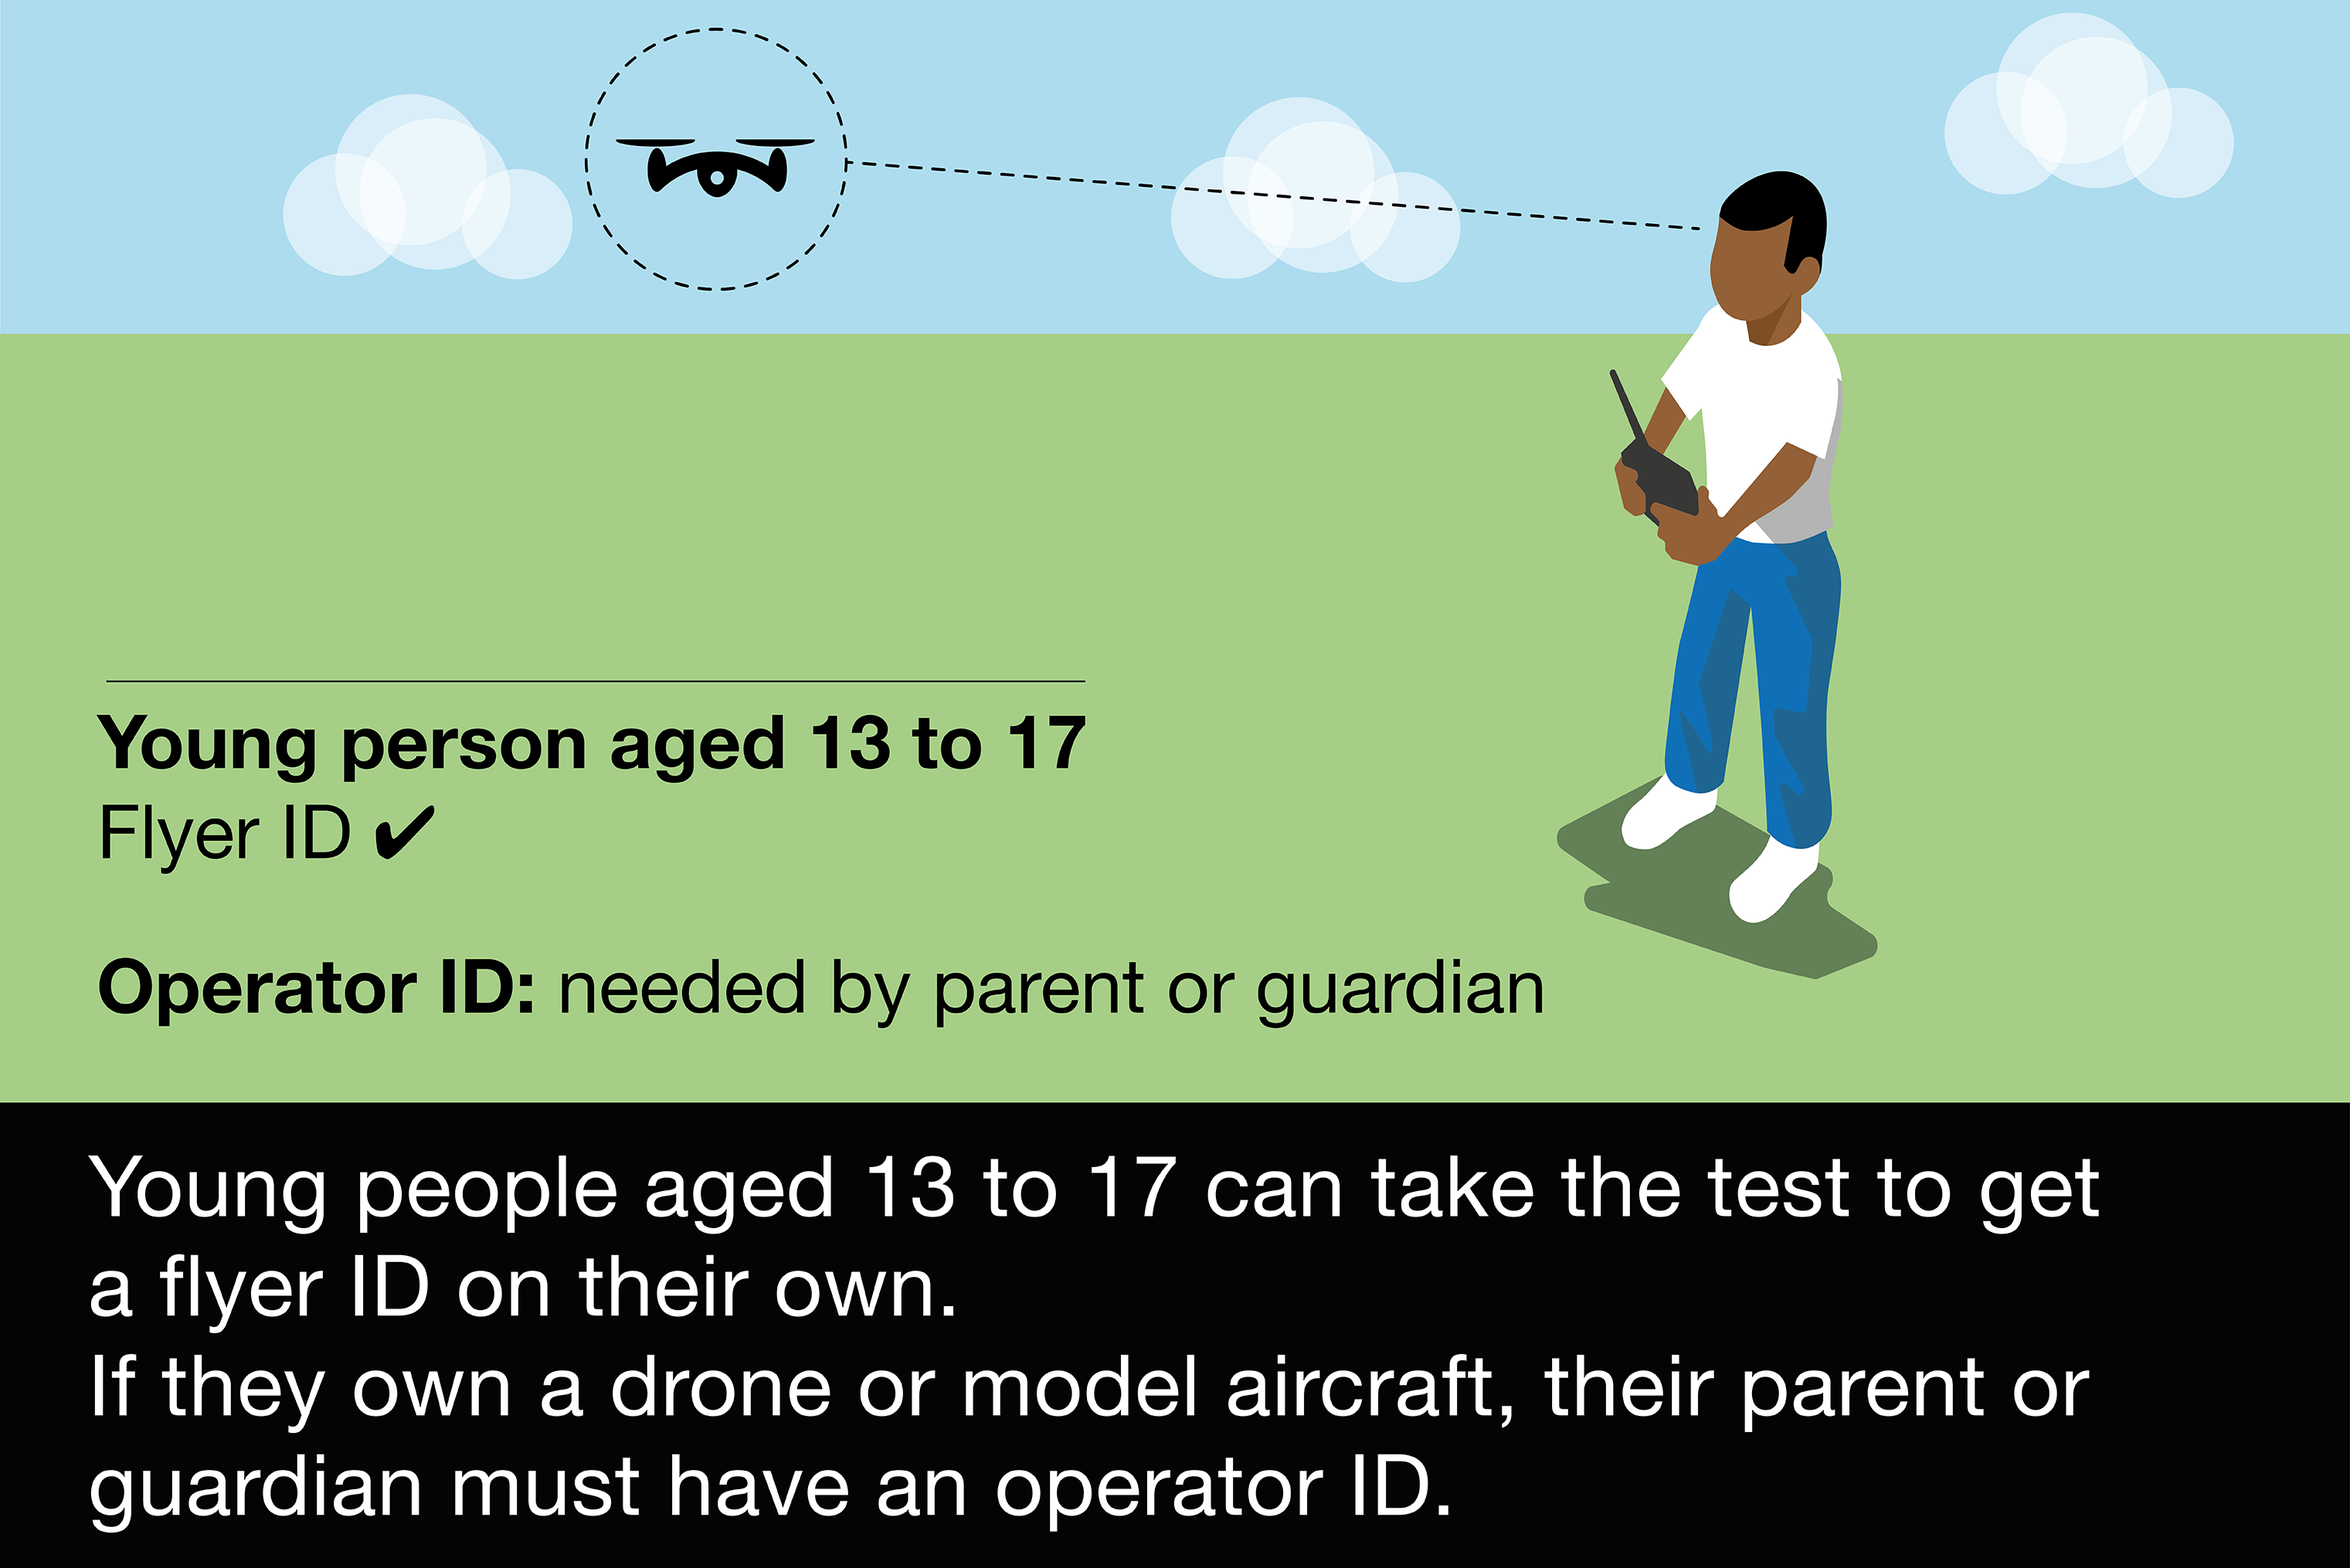 Young people aged 13 to 17 must have a flyer ID, but can fly unsupervised.